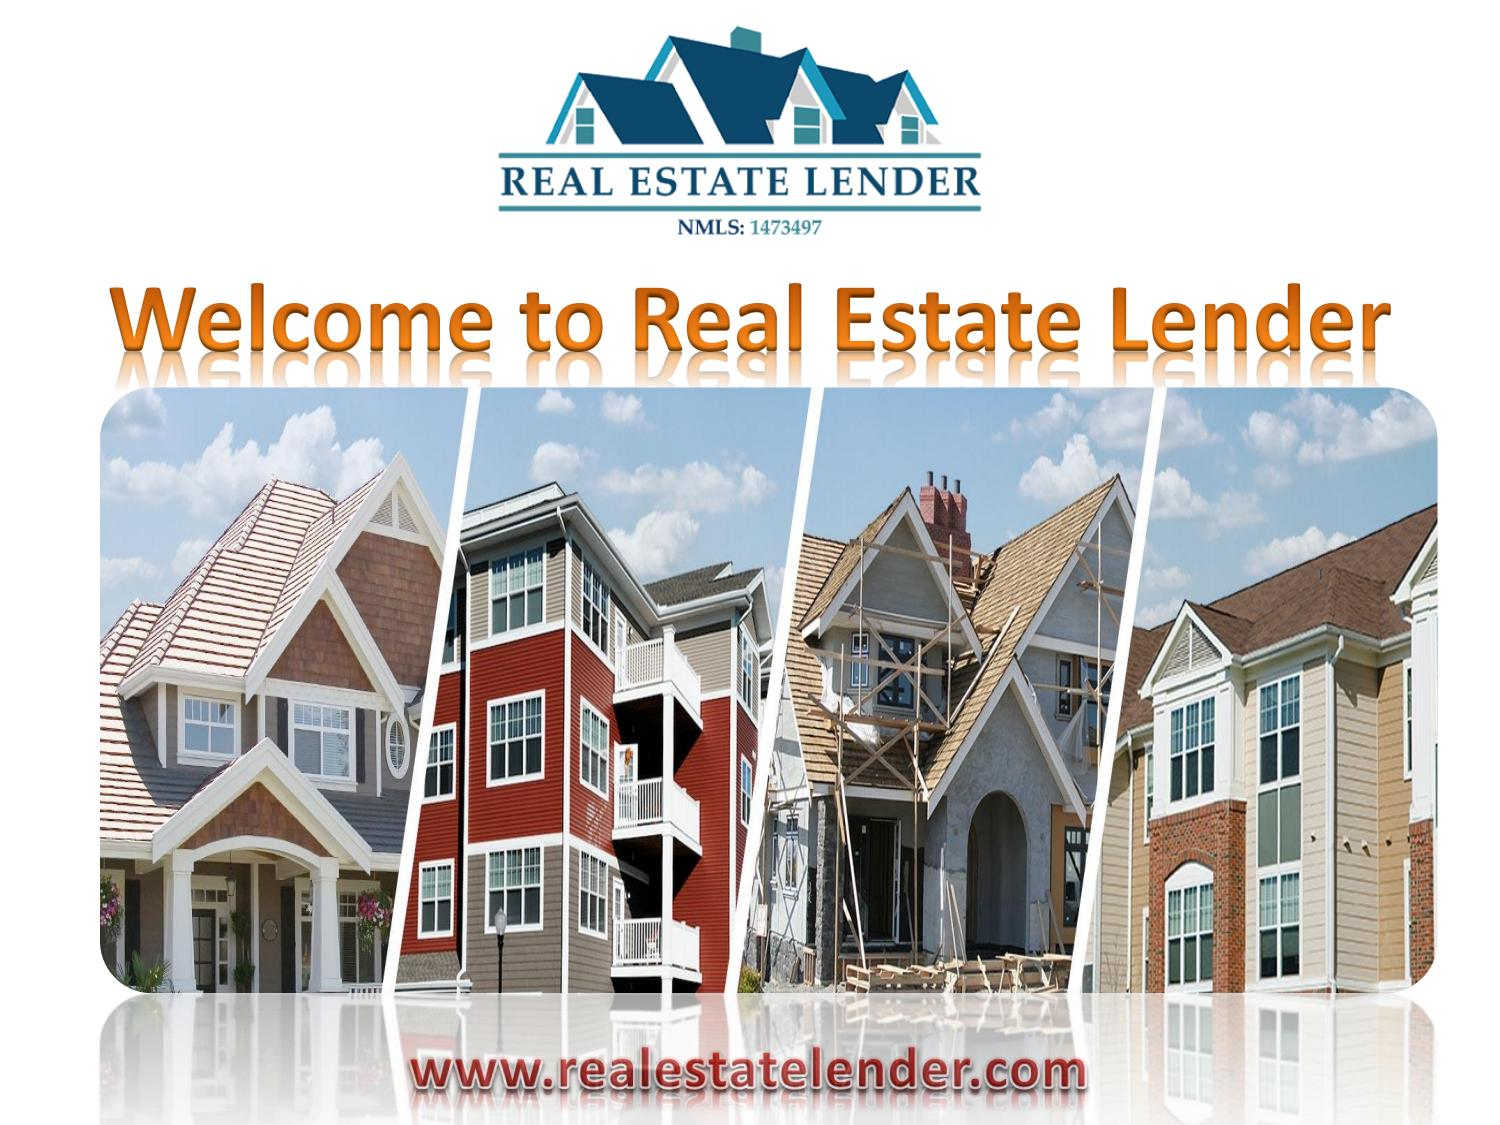 Trusted Fix and Flip Lenders in the United States